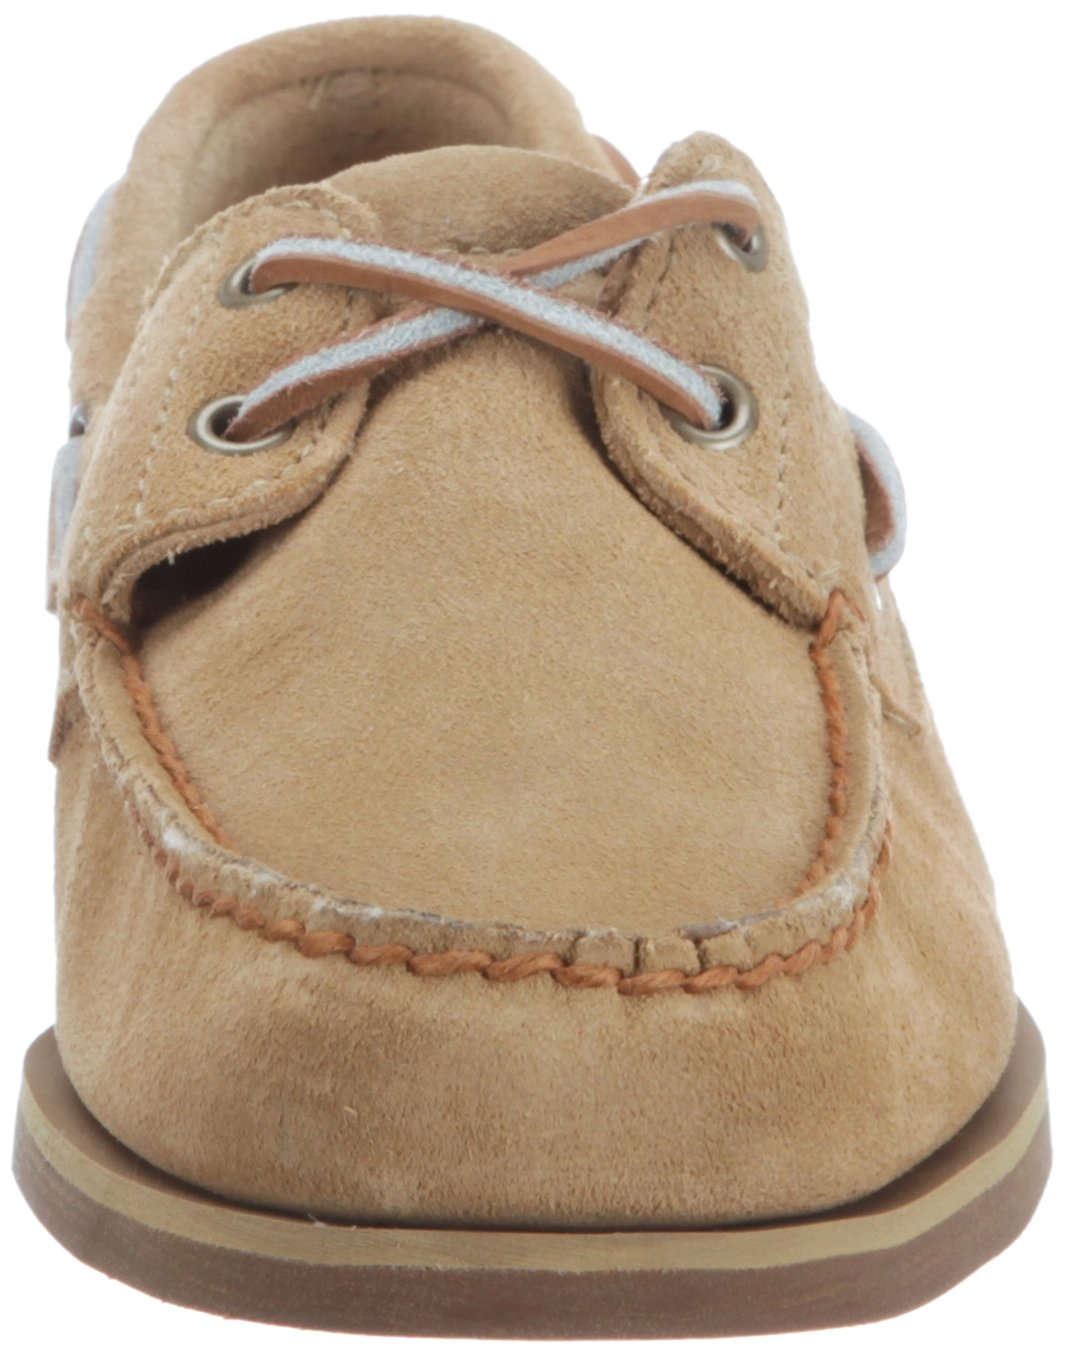 Suede 1004r Classic 2 Eye Timberland Icon Chaussures dXqwPWIc